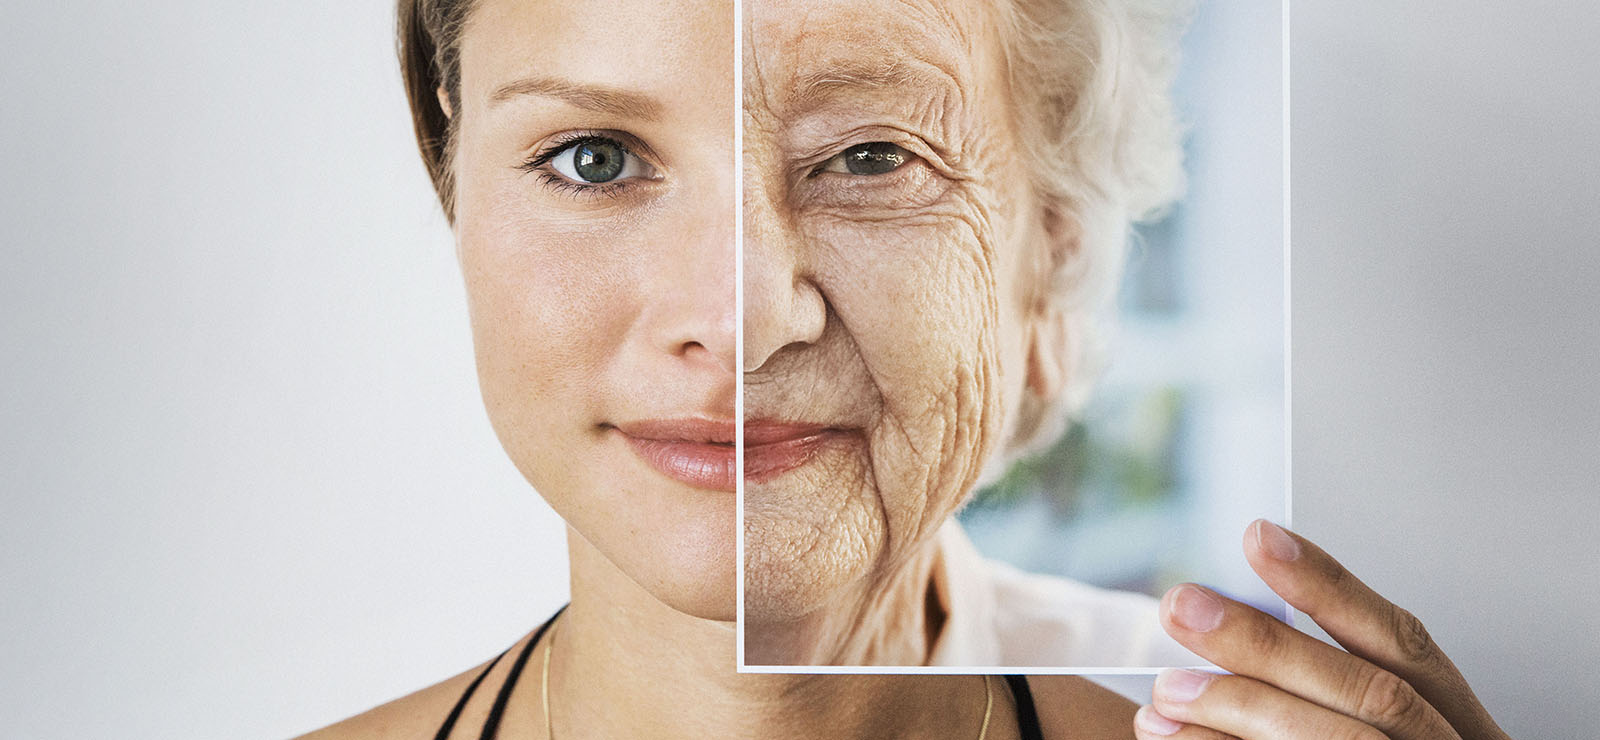 Premature Aging: The Four Biggest Culprits to Watch For